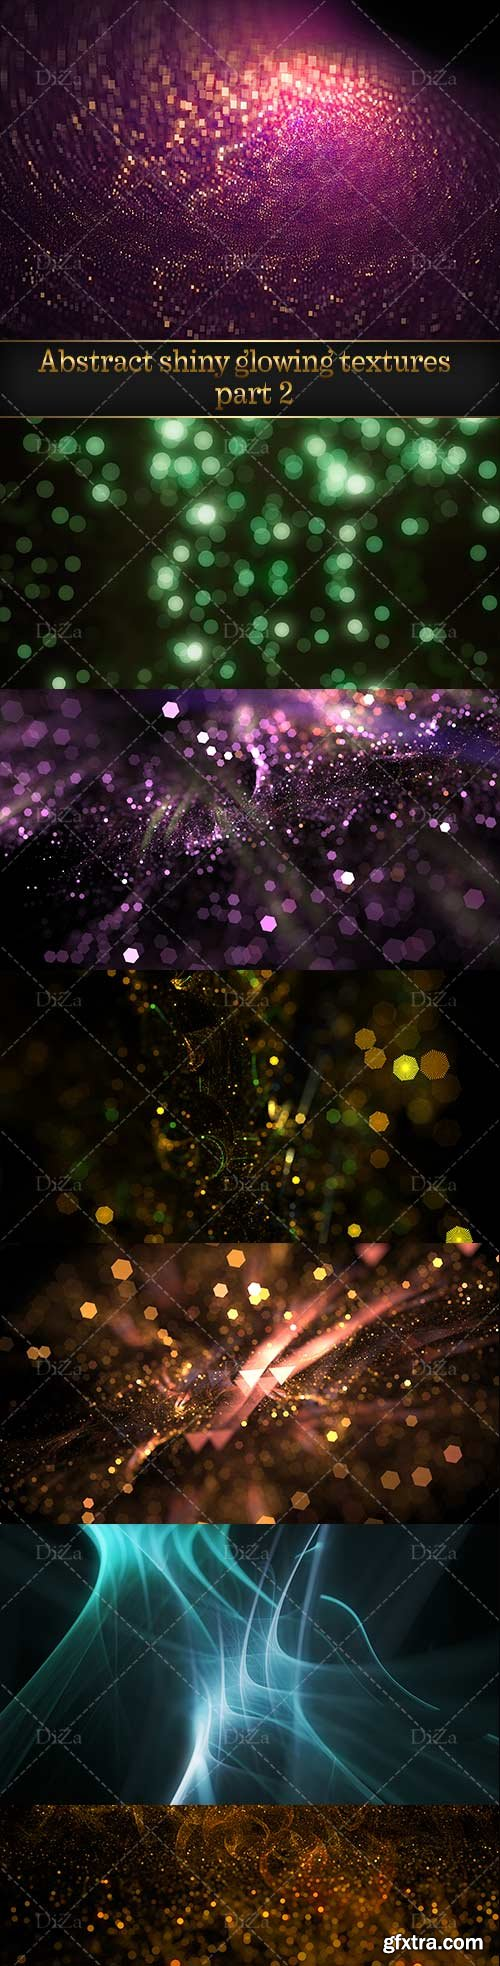 Abstract shiny glowing textures - 2